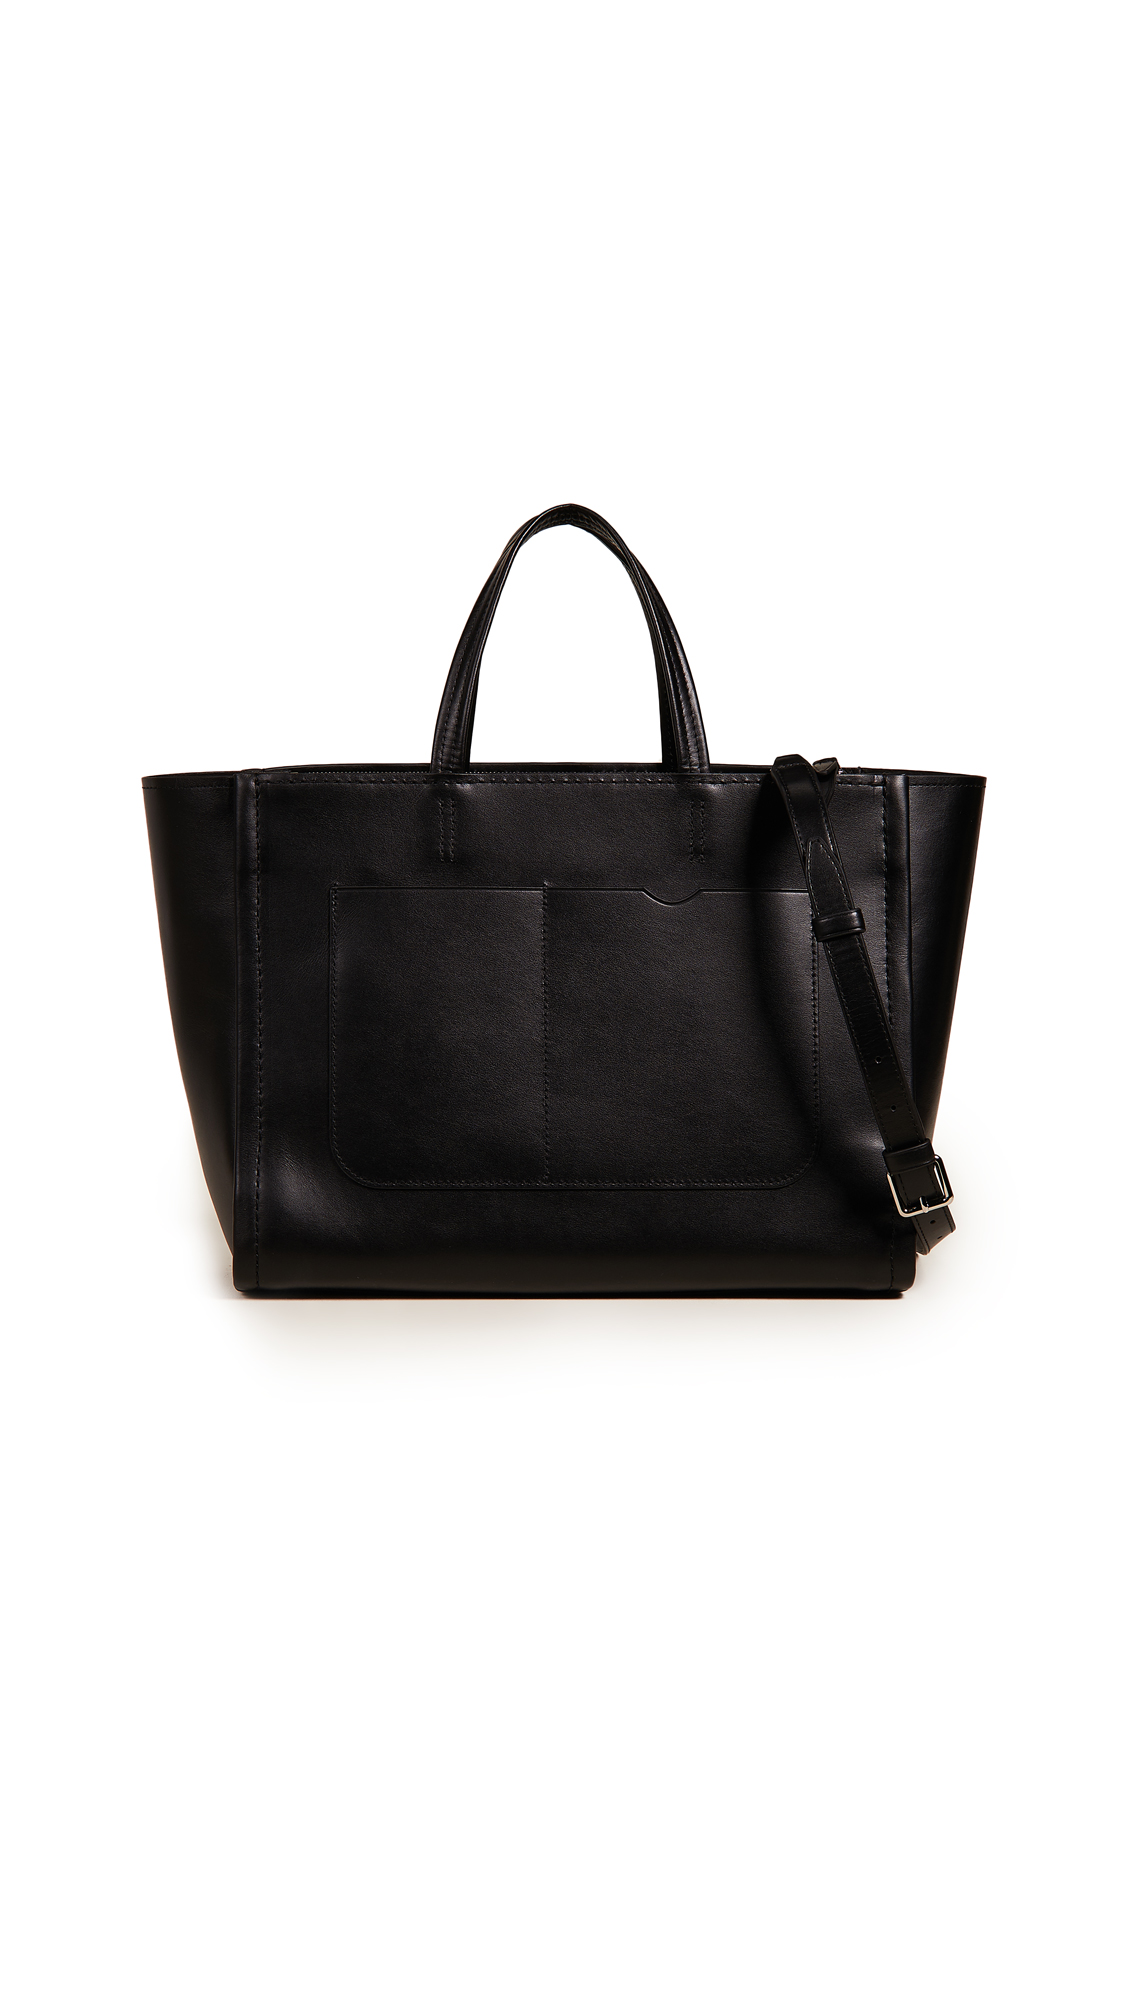 3.1 Phillip Lim Hudson City Tote - Black